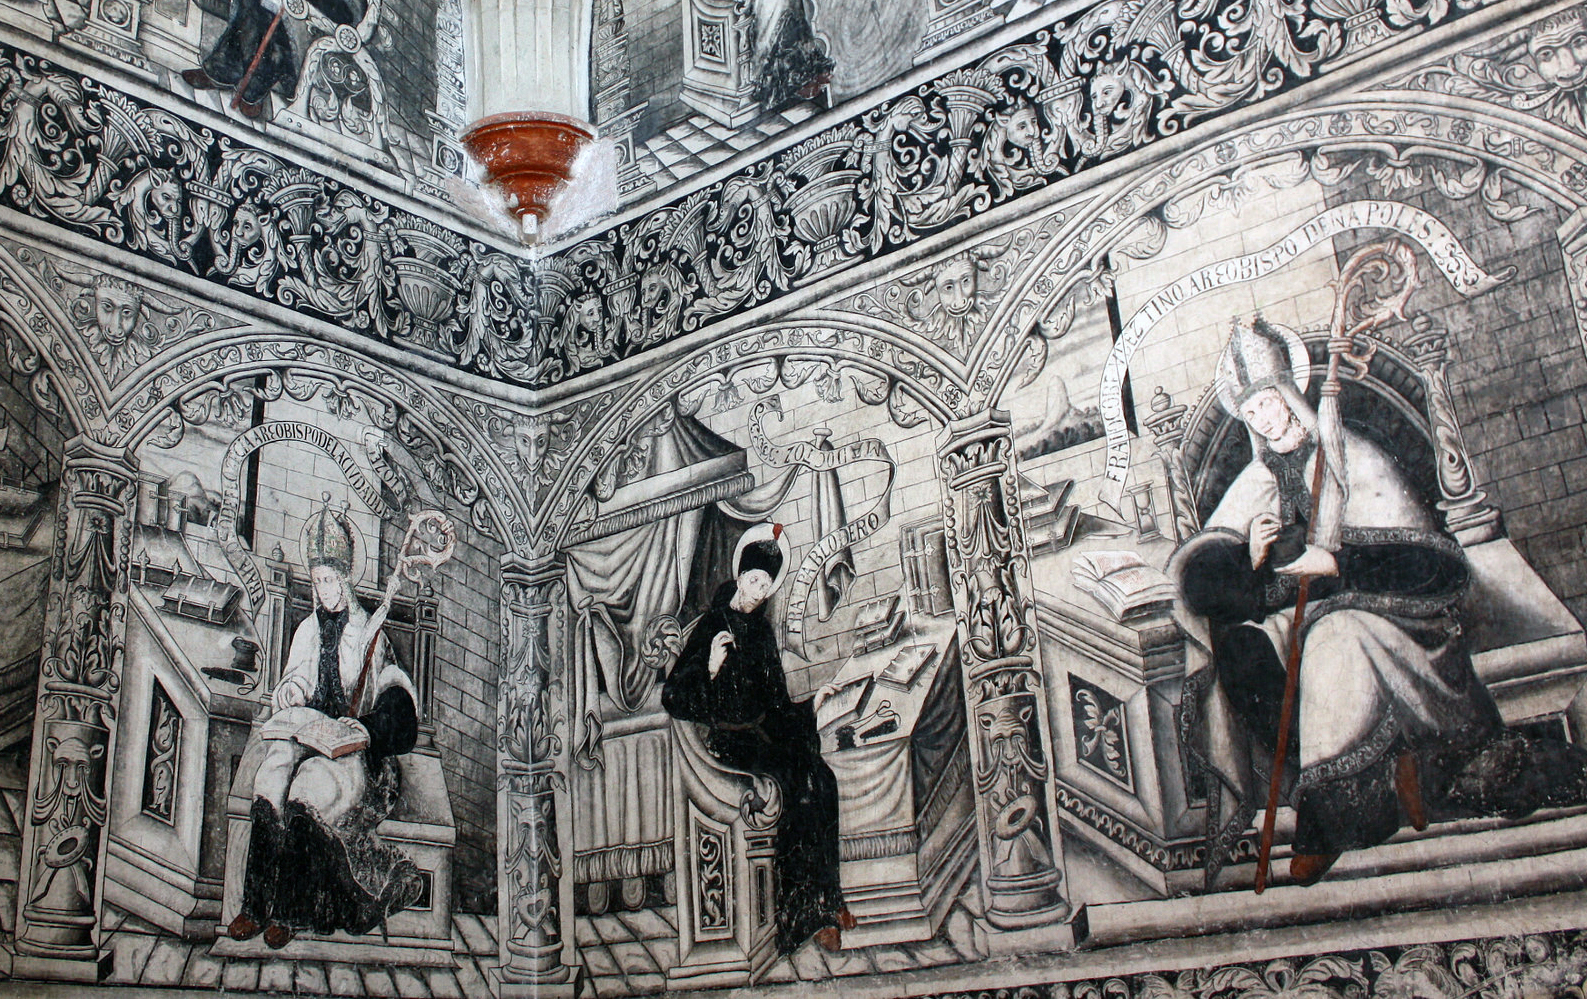 Augustinian heroes (esteemed figures) at desks (detail), stairway murals, Convent of San Nicolás Tolentino, 1546 and after, Actopan, Hidalgo, Mexico (photo: linkogecko, CC BY-NC-ND 2.0)